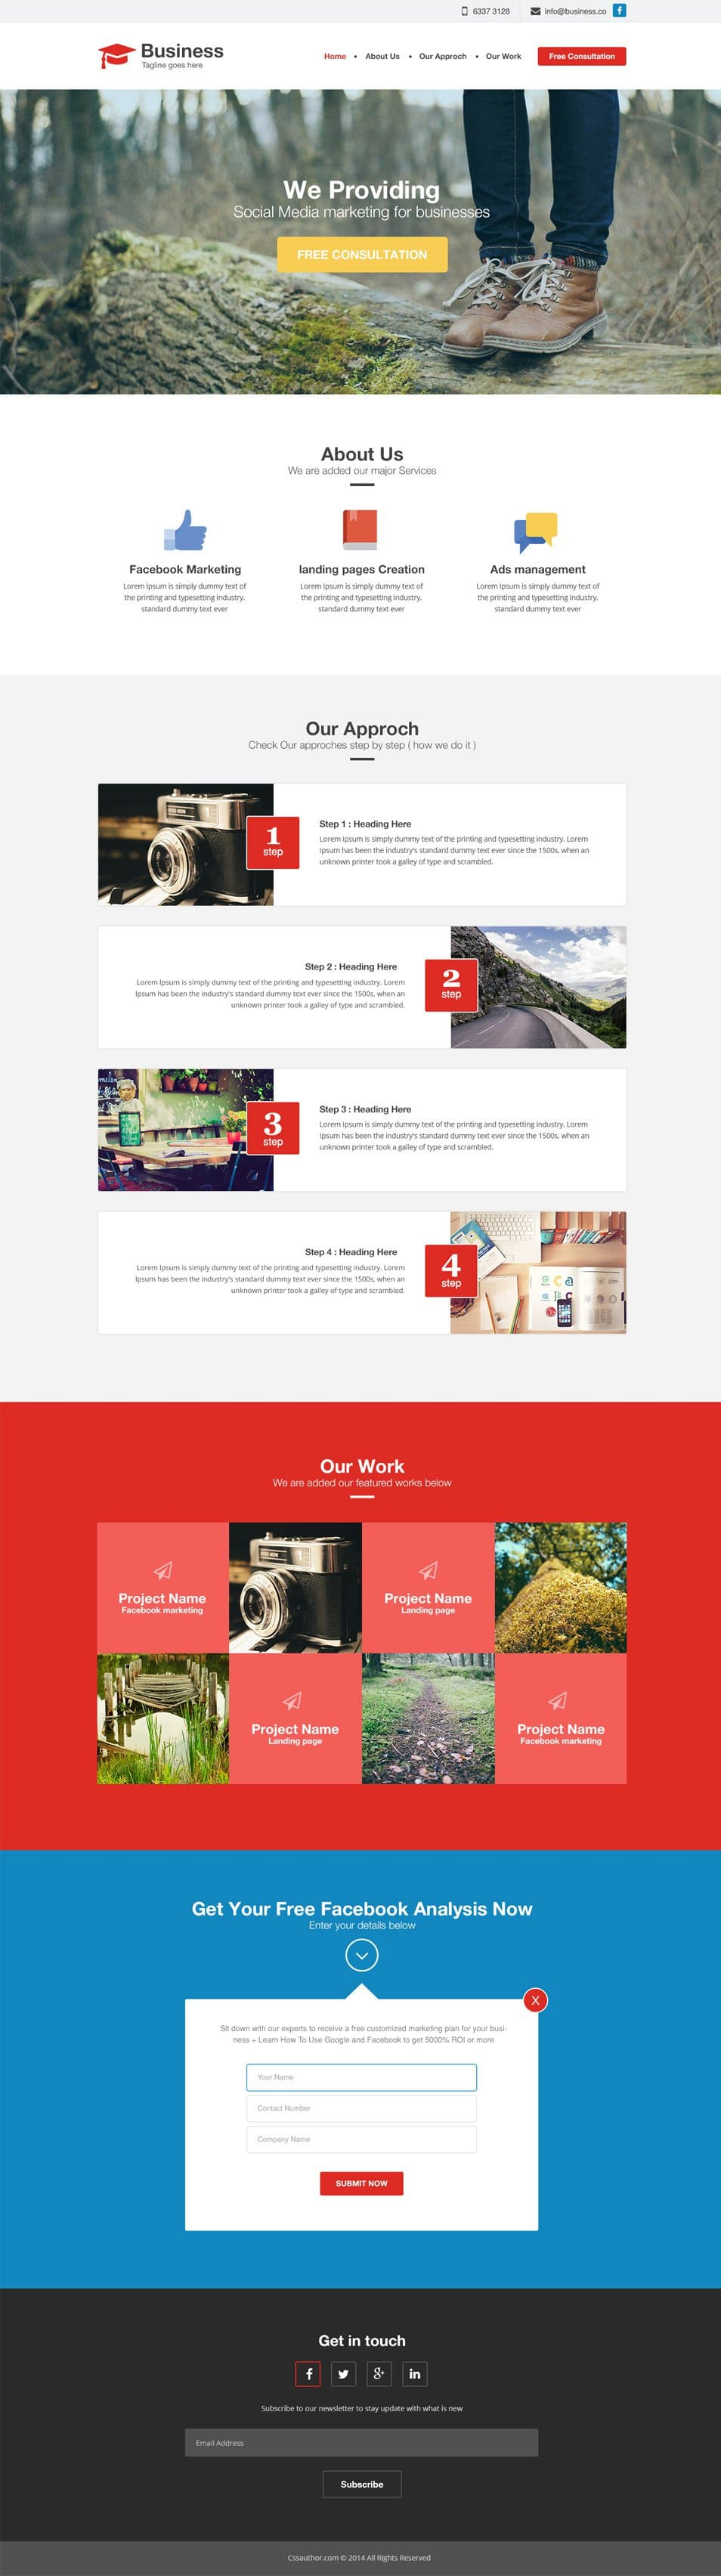 Agency / Business Website Template PSD